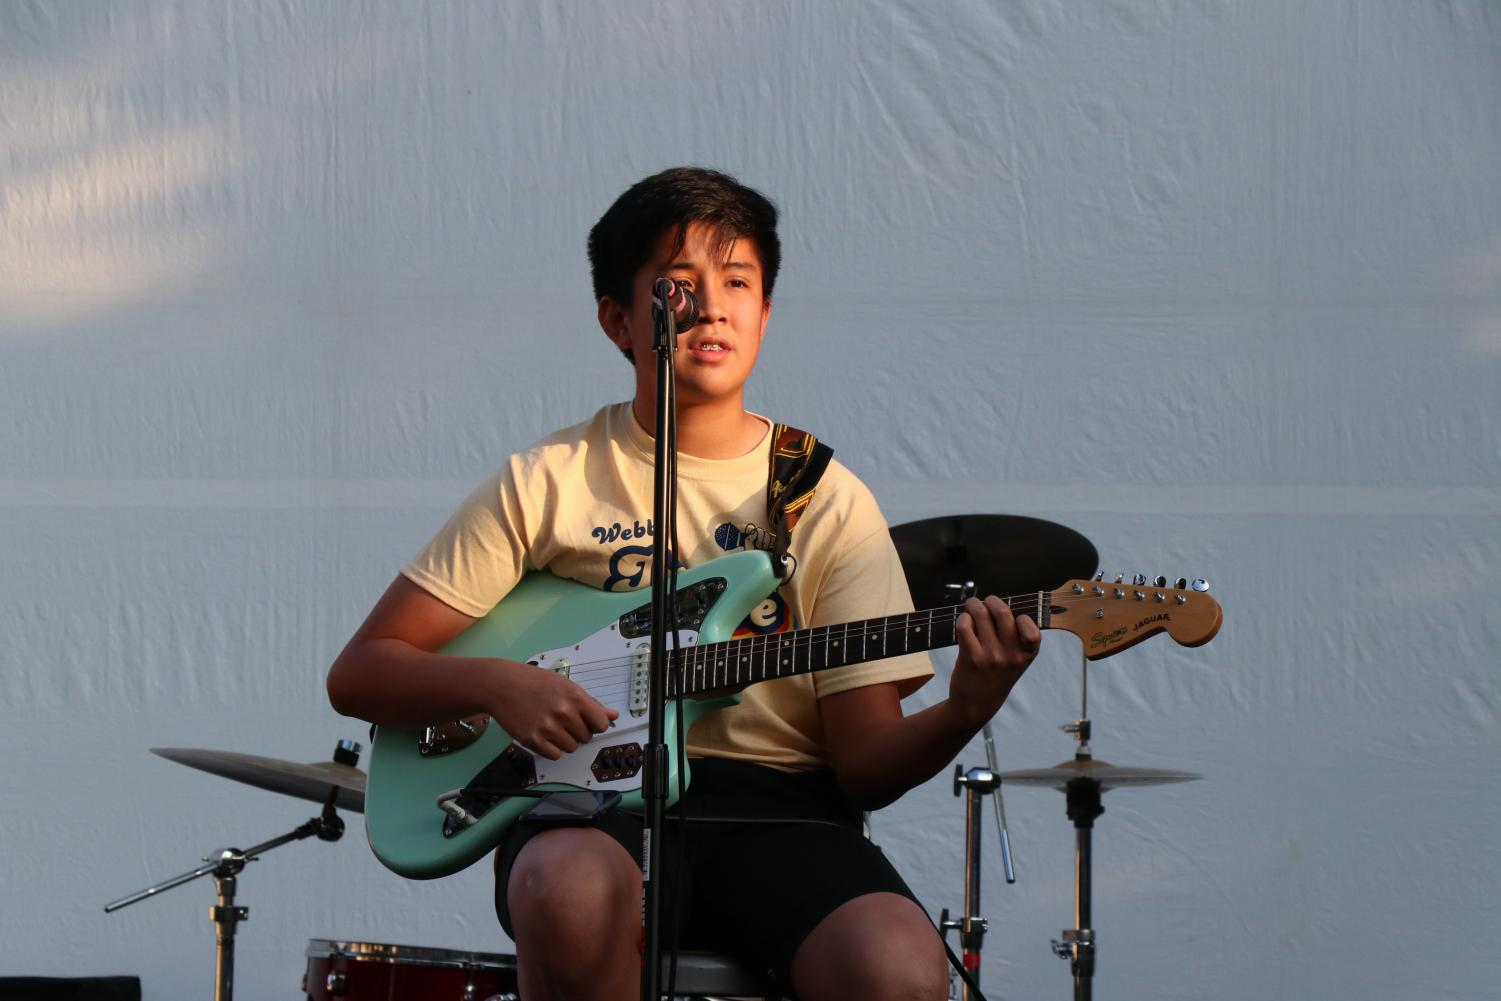 Xander+Kong+%28%2722%29+plays+the+guitar+and+sings.+